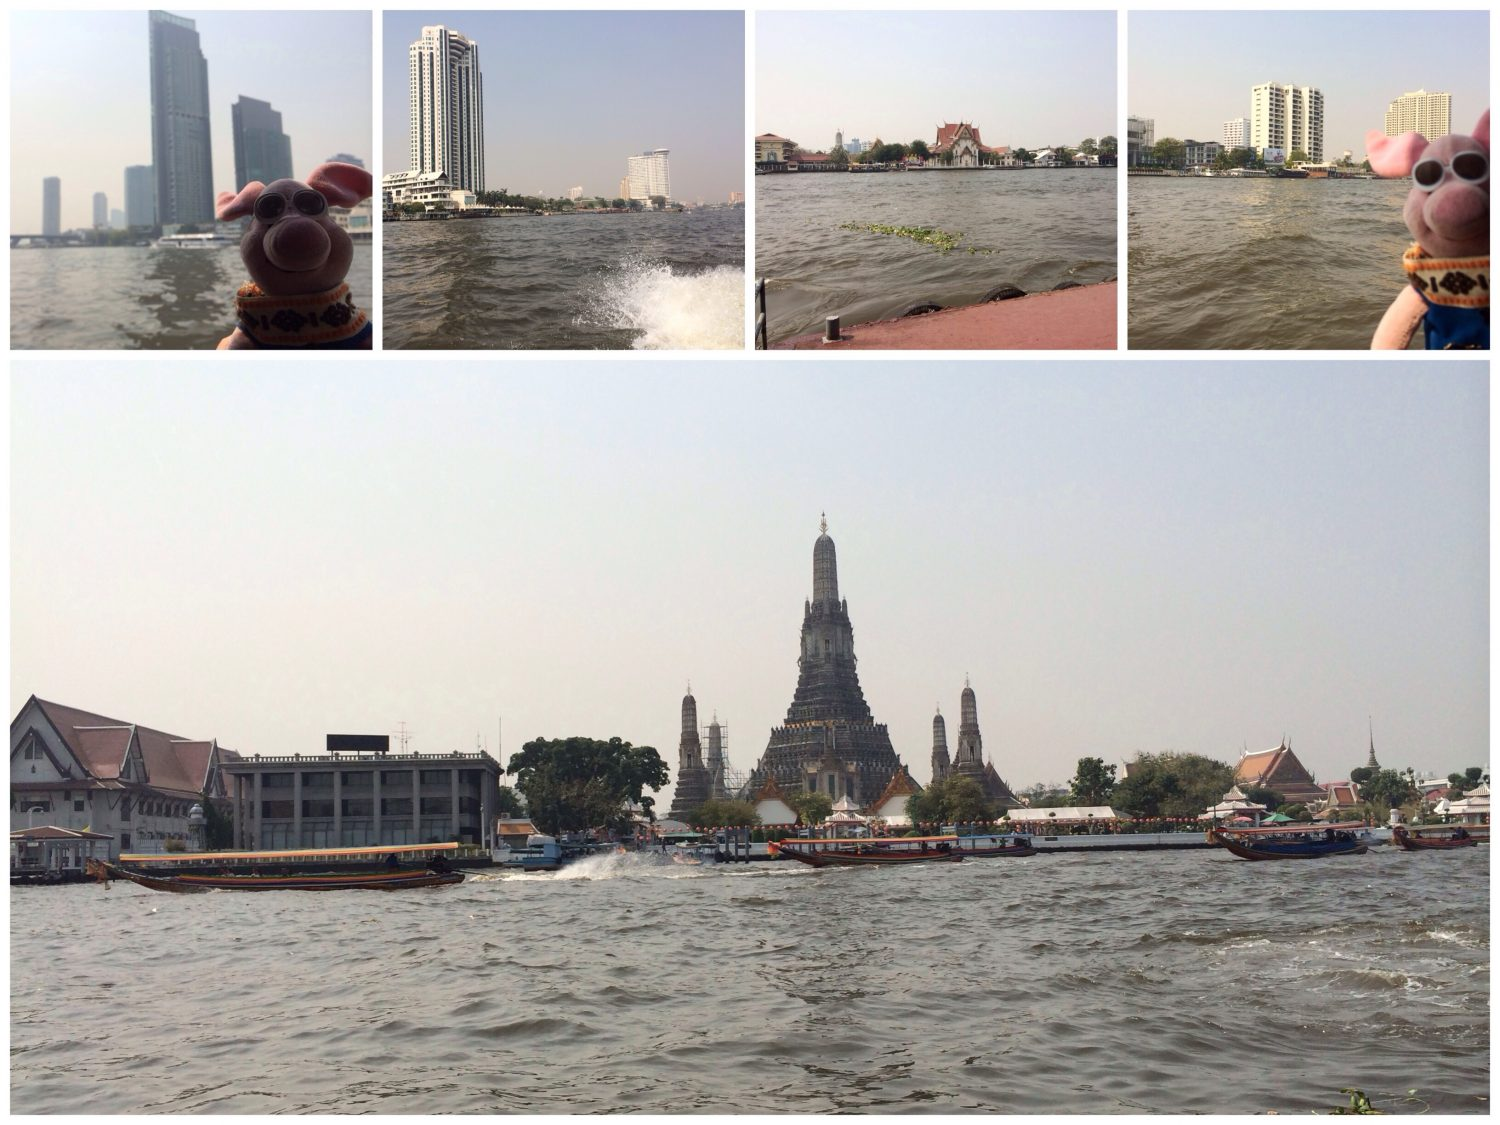 Bootstour in Bangkok.